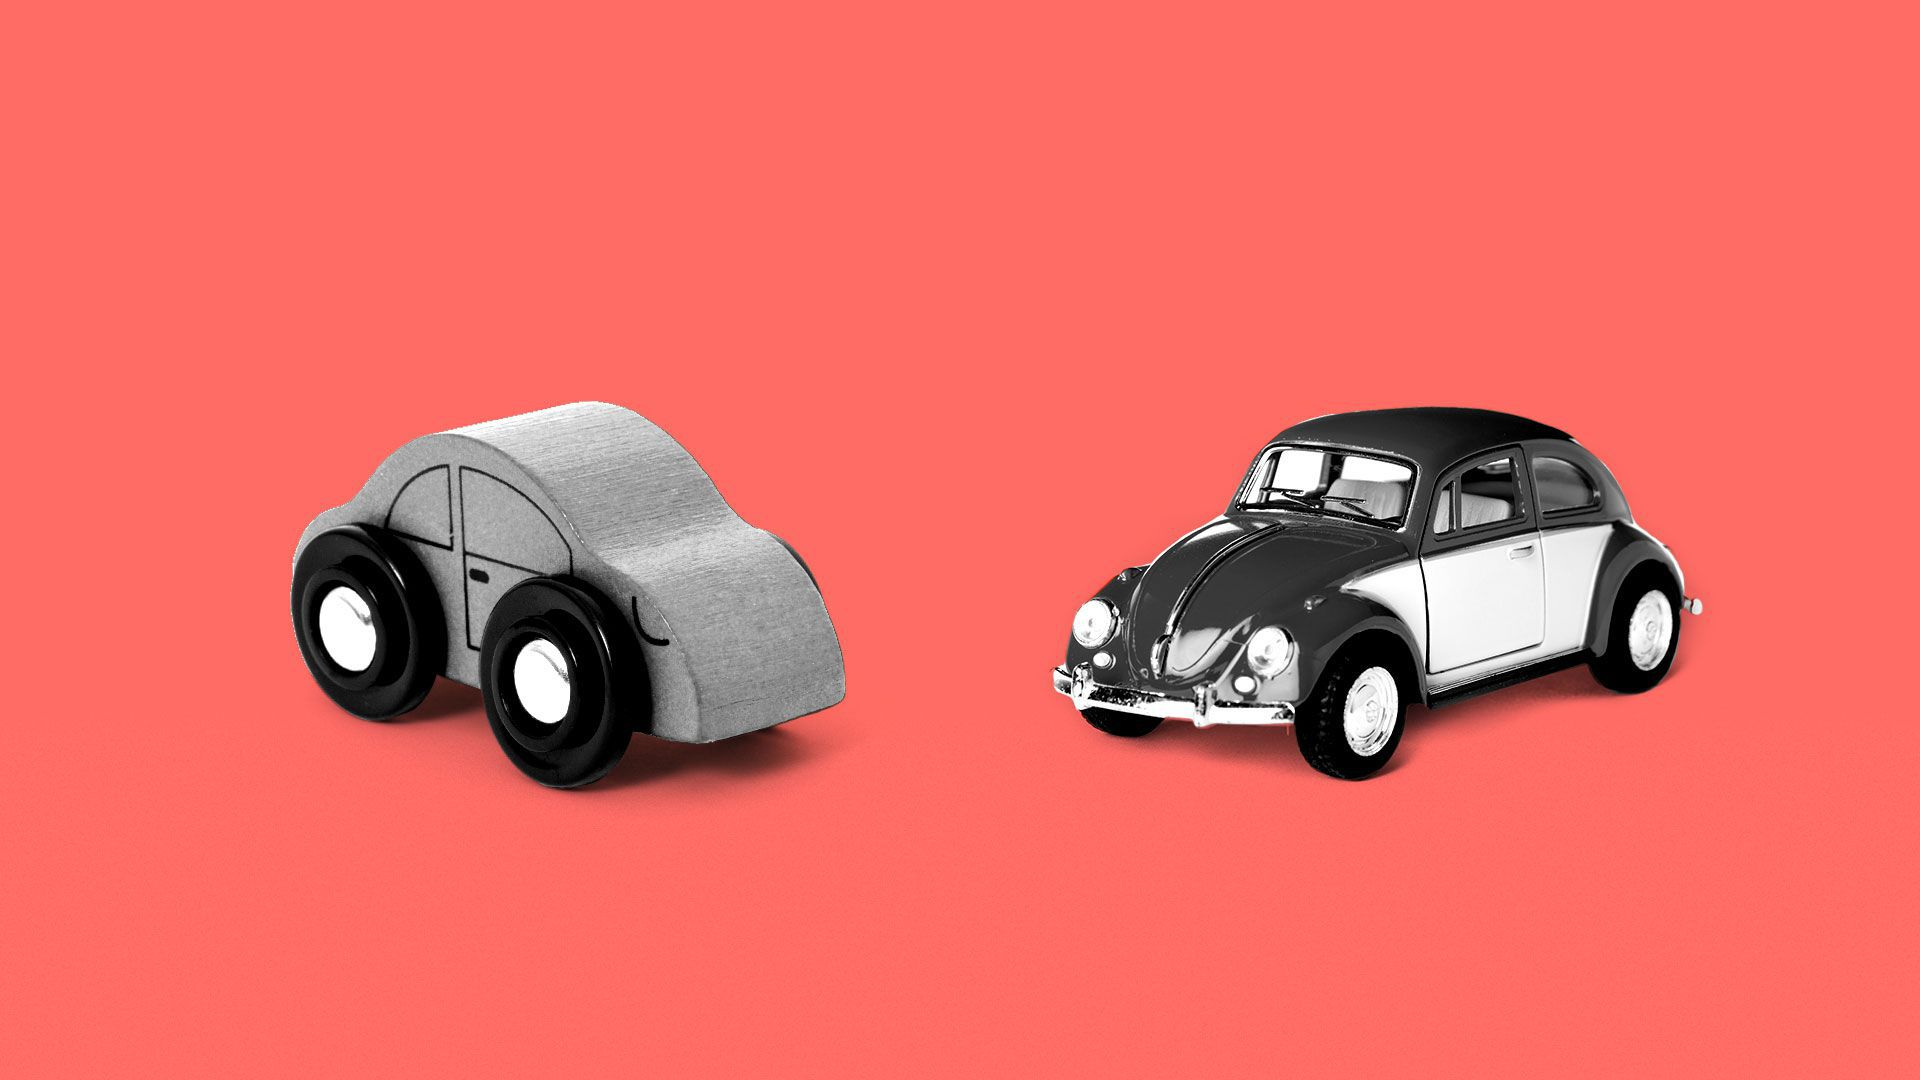 Illustration of a wooden car next to a VW beetle